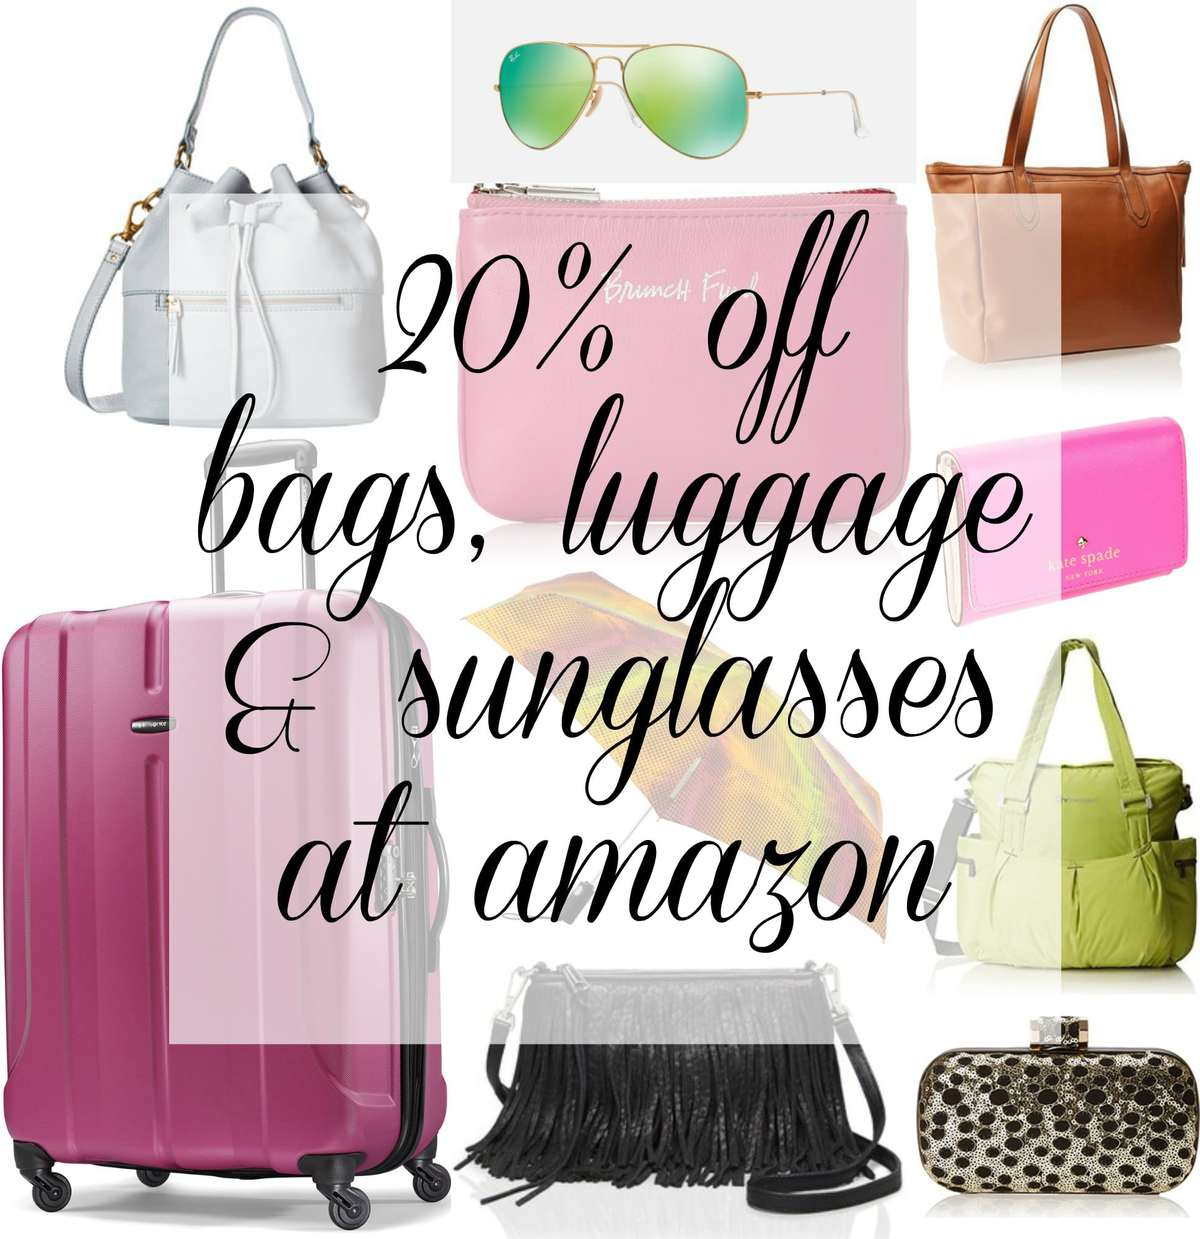 20% off at Amazon for Bags, Luggage and Sunglasses - Details on the Promo, the Code, and my picks for the Sale